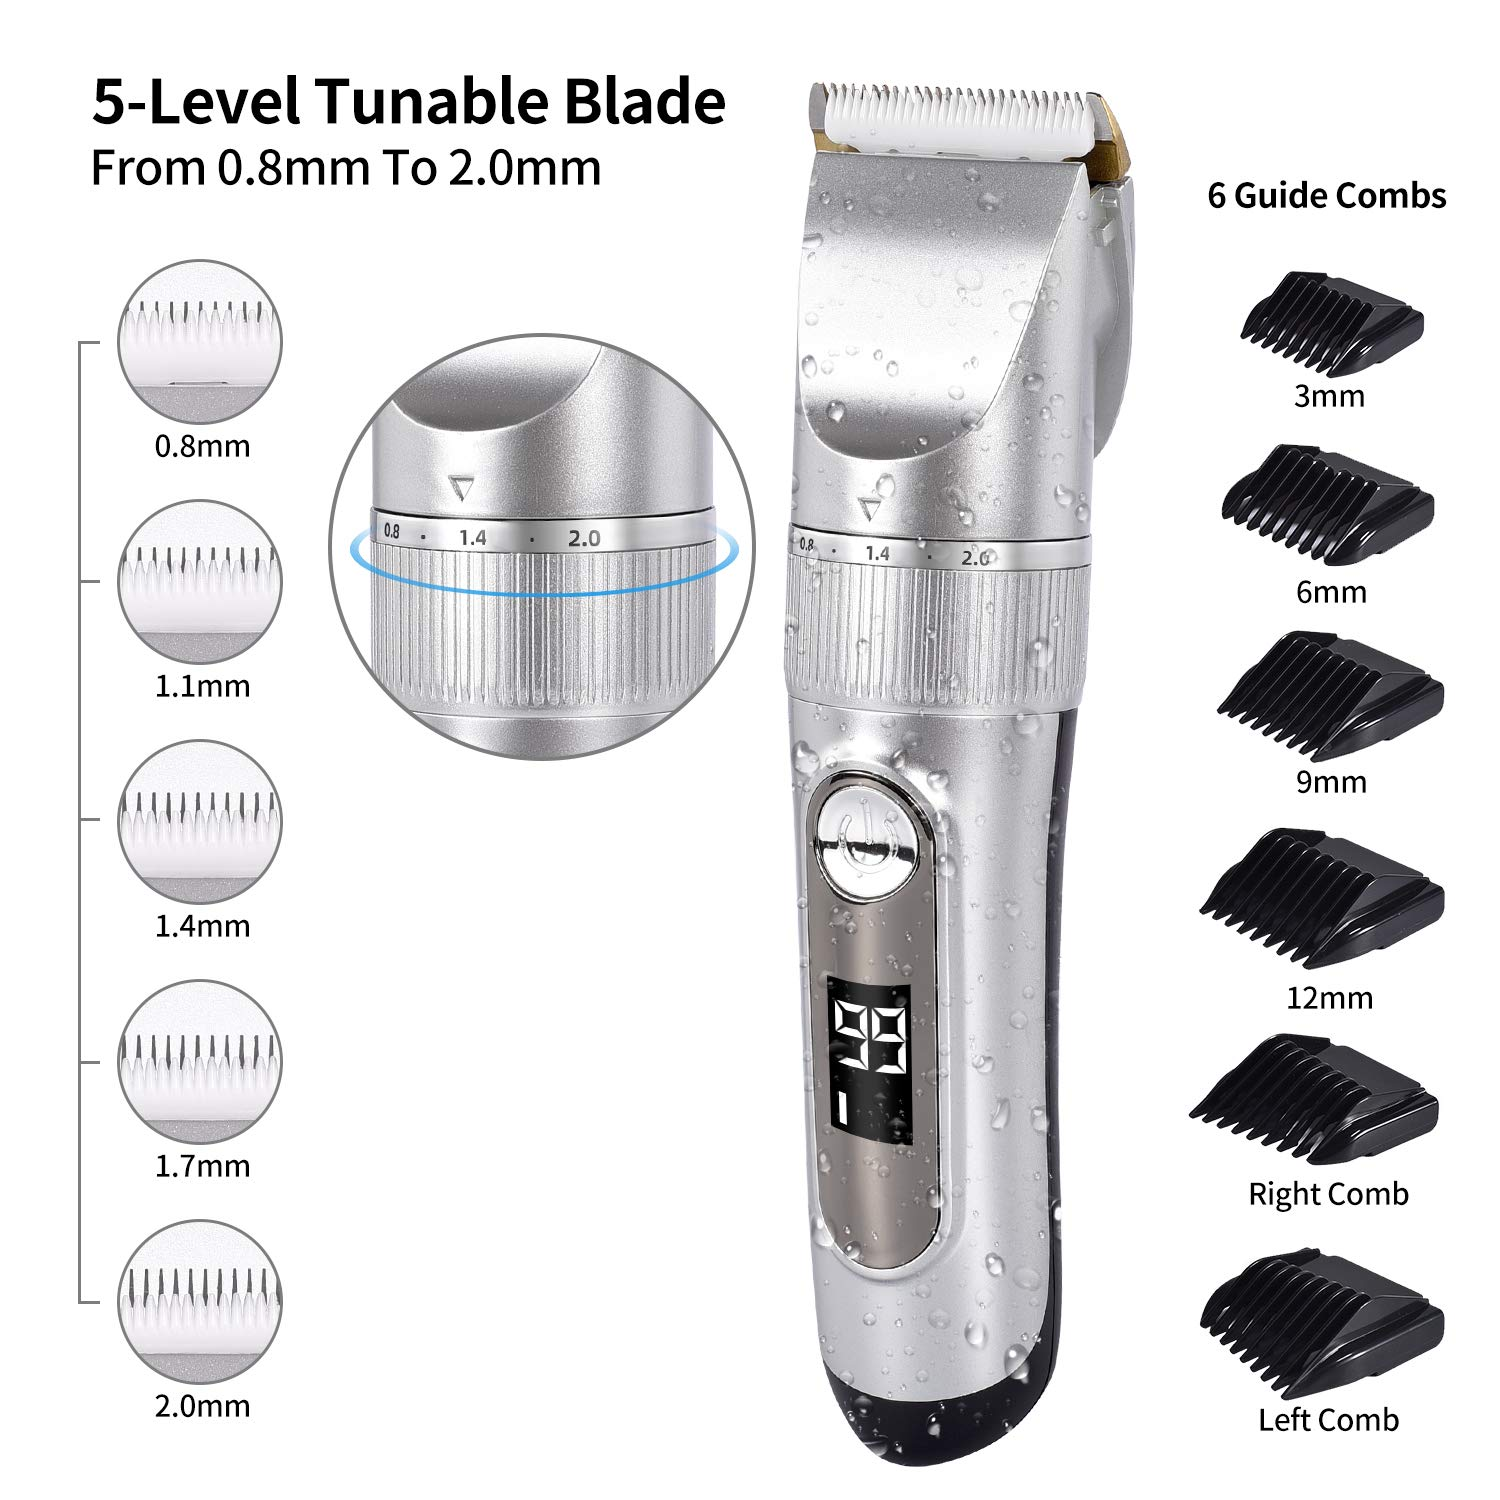 Professional Cordless Hair Clippers for Men Beard Trimmer IPX7 Waterproof Pro Barber Hair Cutting Kit with LED Display USB Rechargeable Pro Titanium Ceramic Shaver Blade